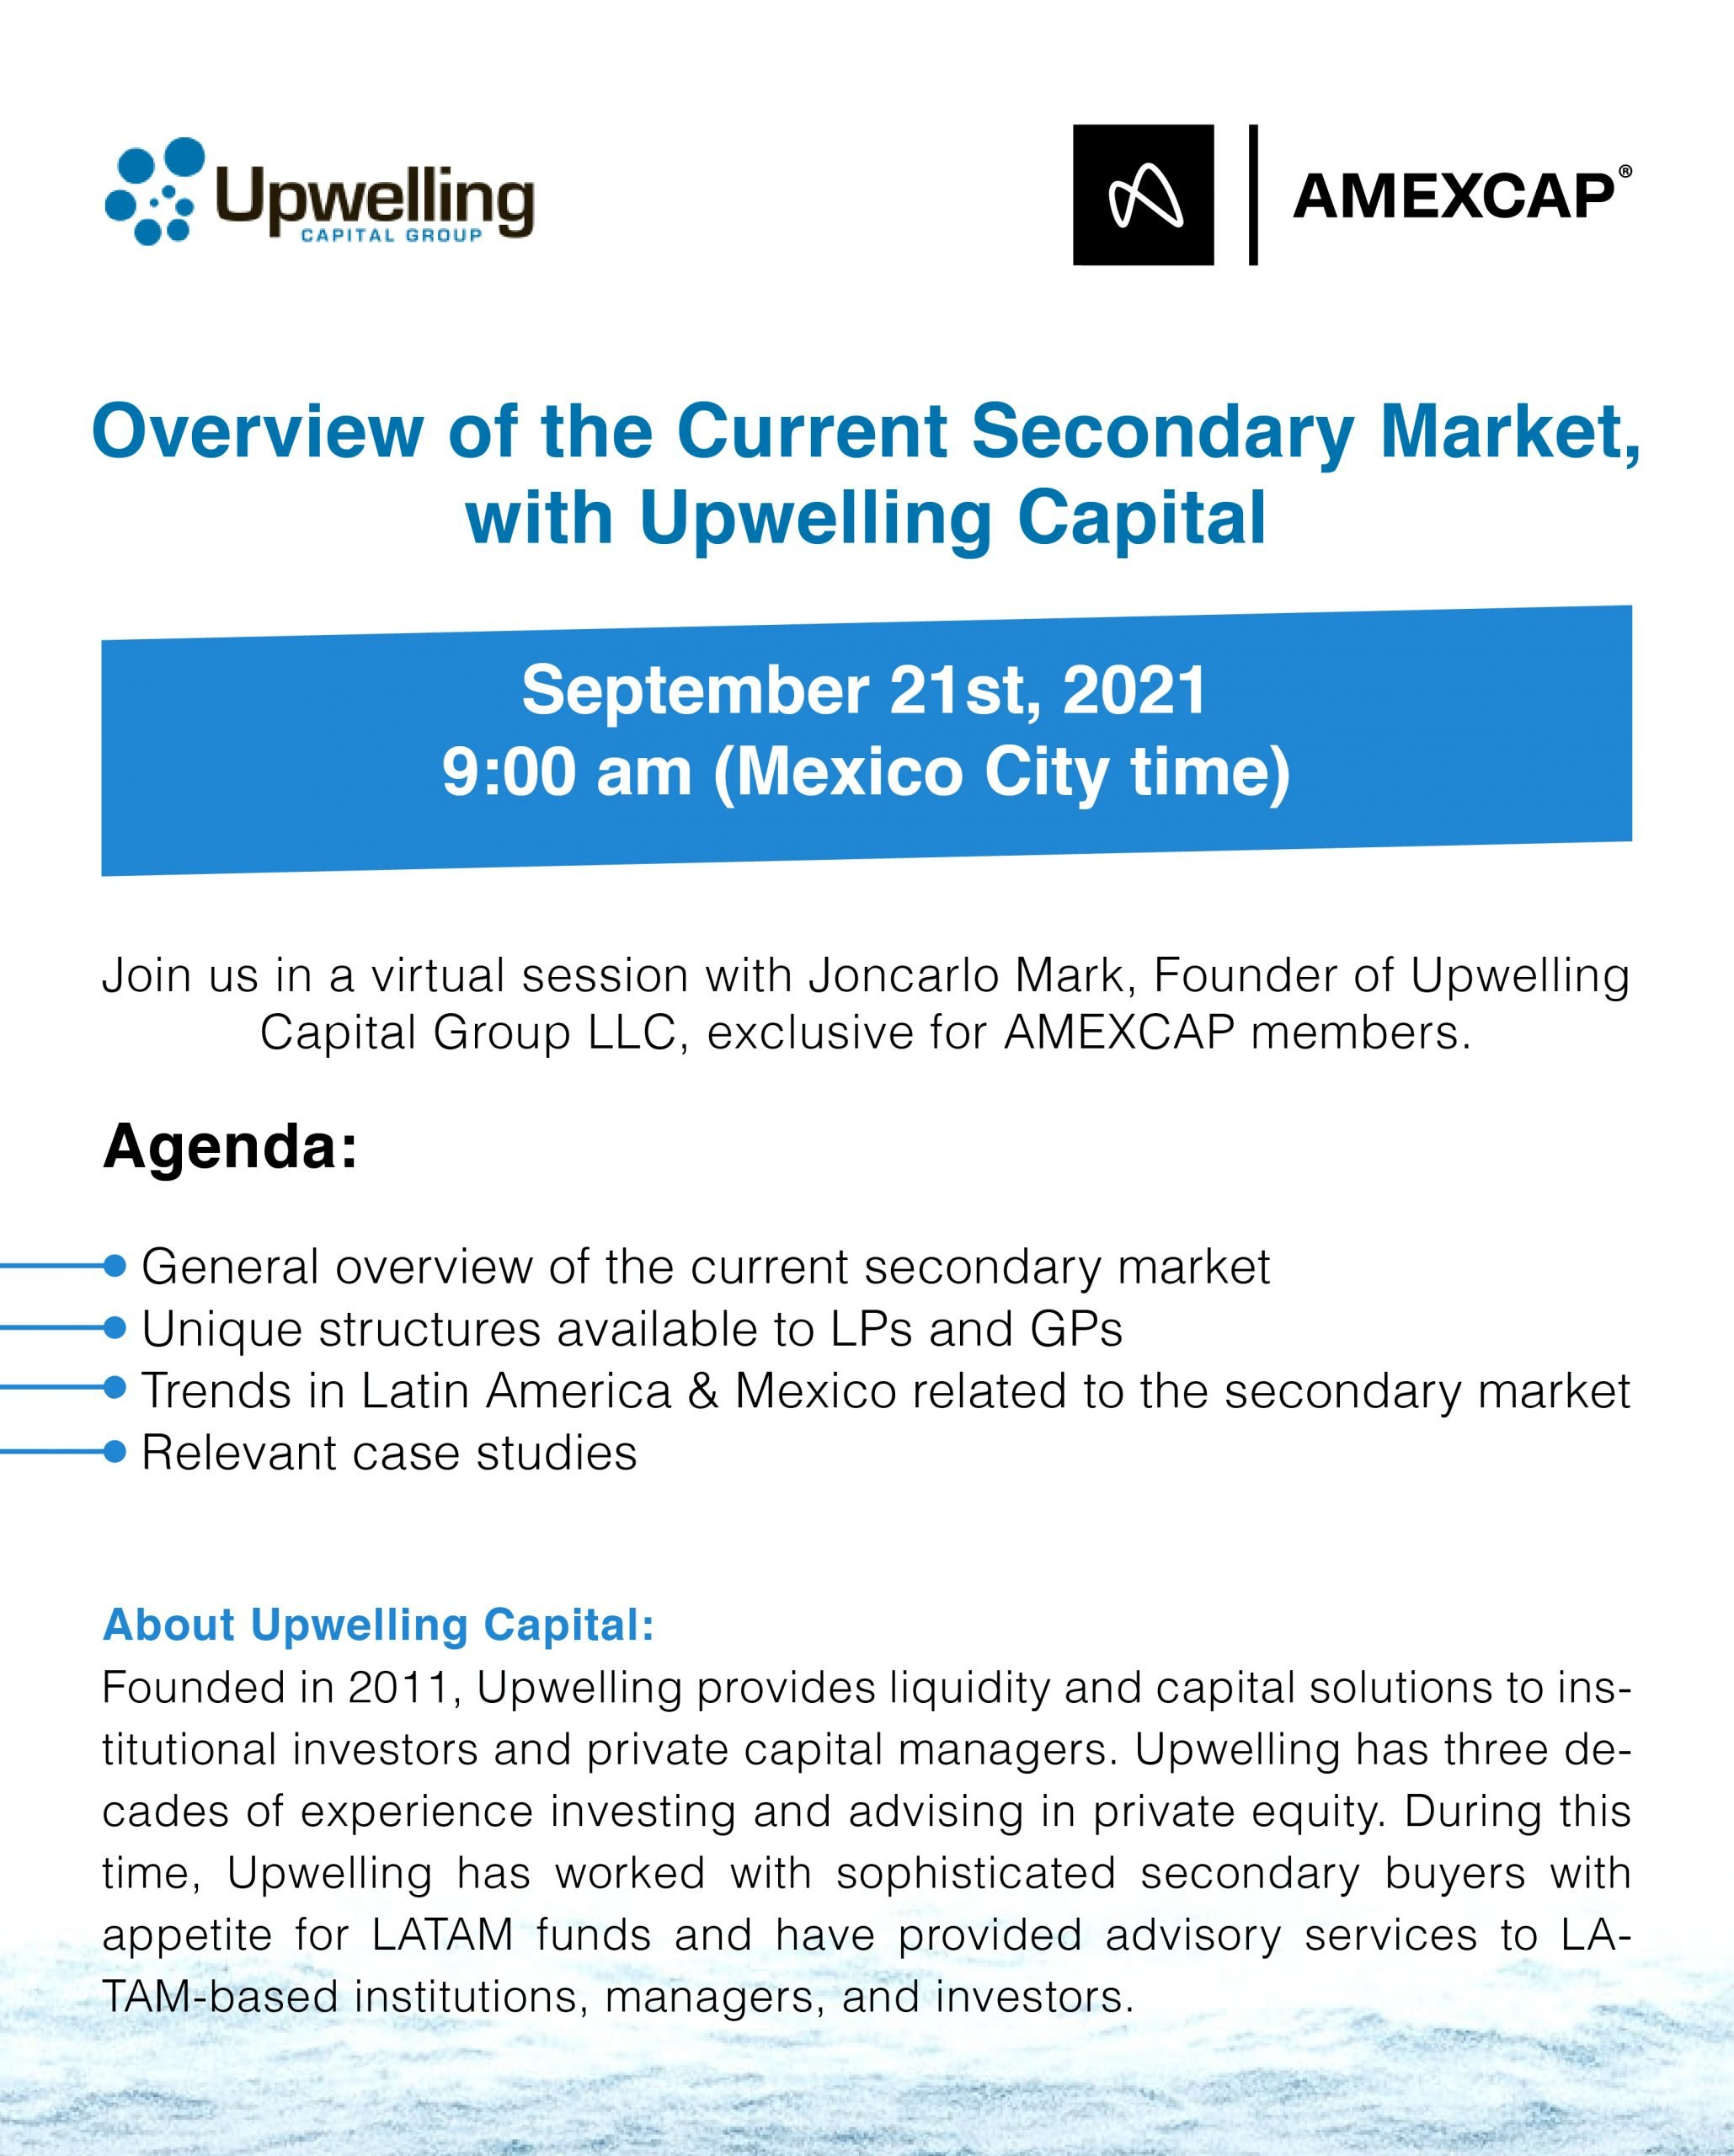 Overview of the Current Secondary Market, with Upwelling Capital Group